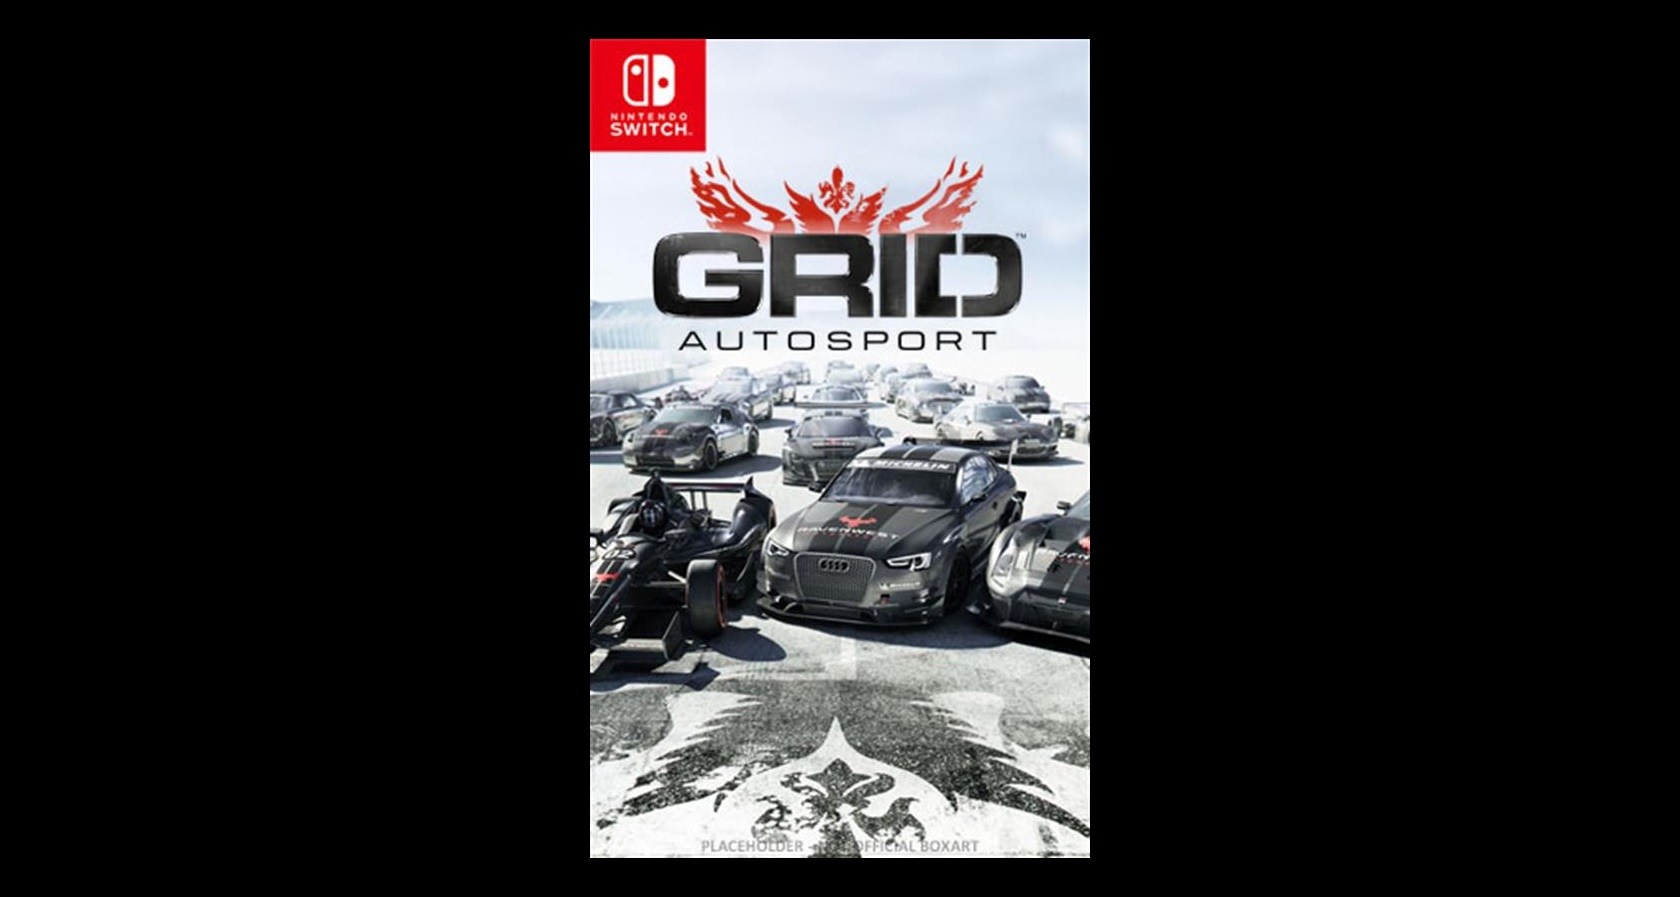 GRID Autosport Might Be Receiving A Retail Release On The